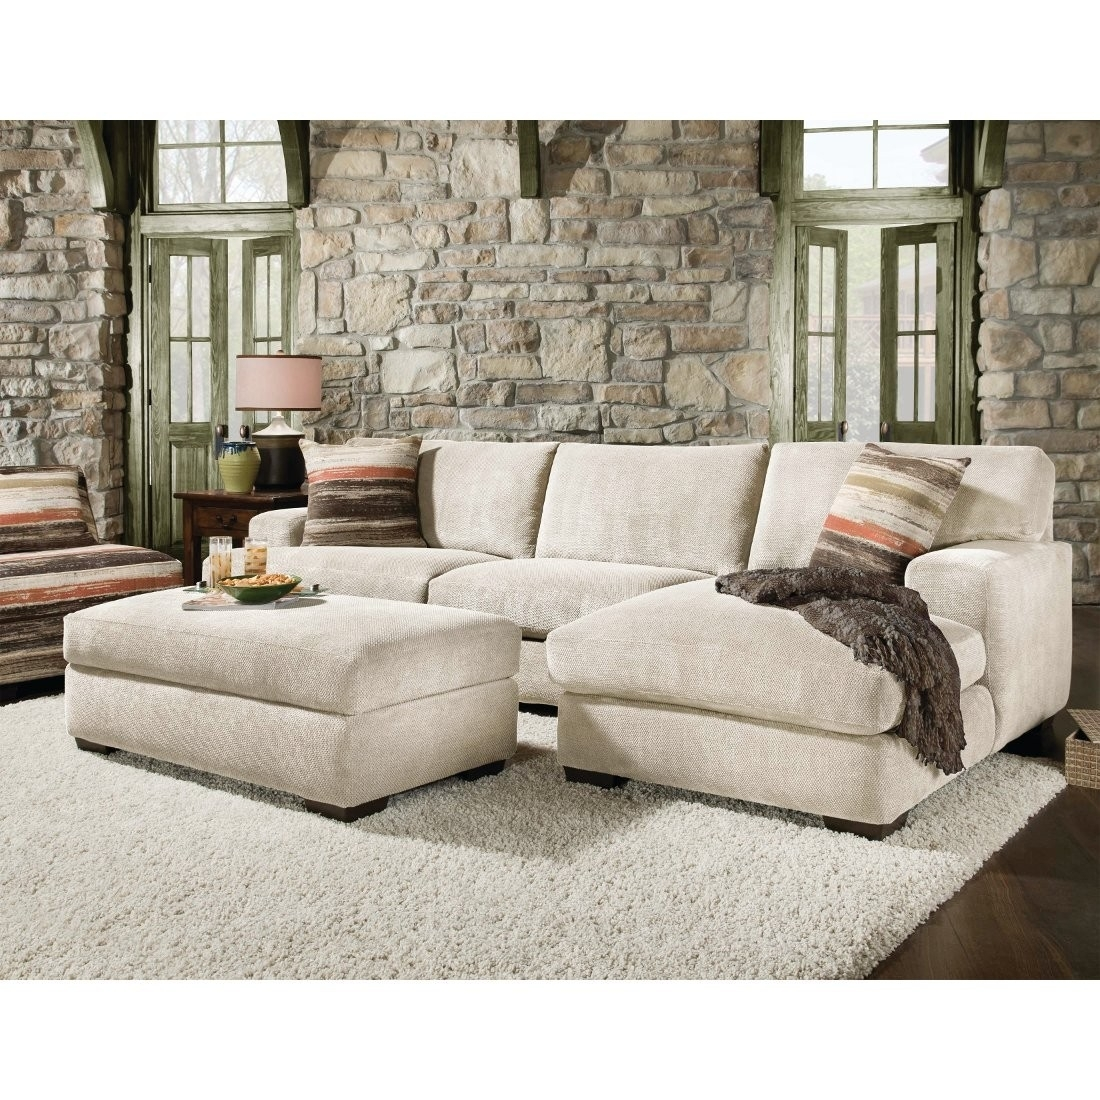 Sectional Sofa Design: Sectional Sofa With Chaise And Ottoman Sofas Throughout Sectionals With Chaise And Ottoman (View 3 of 10)